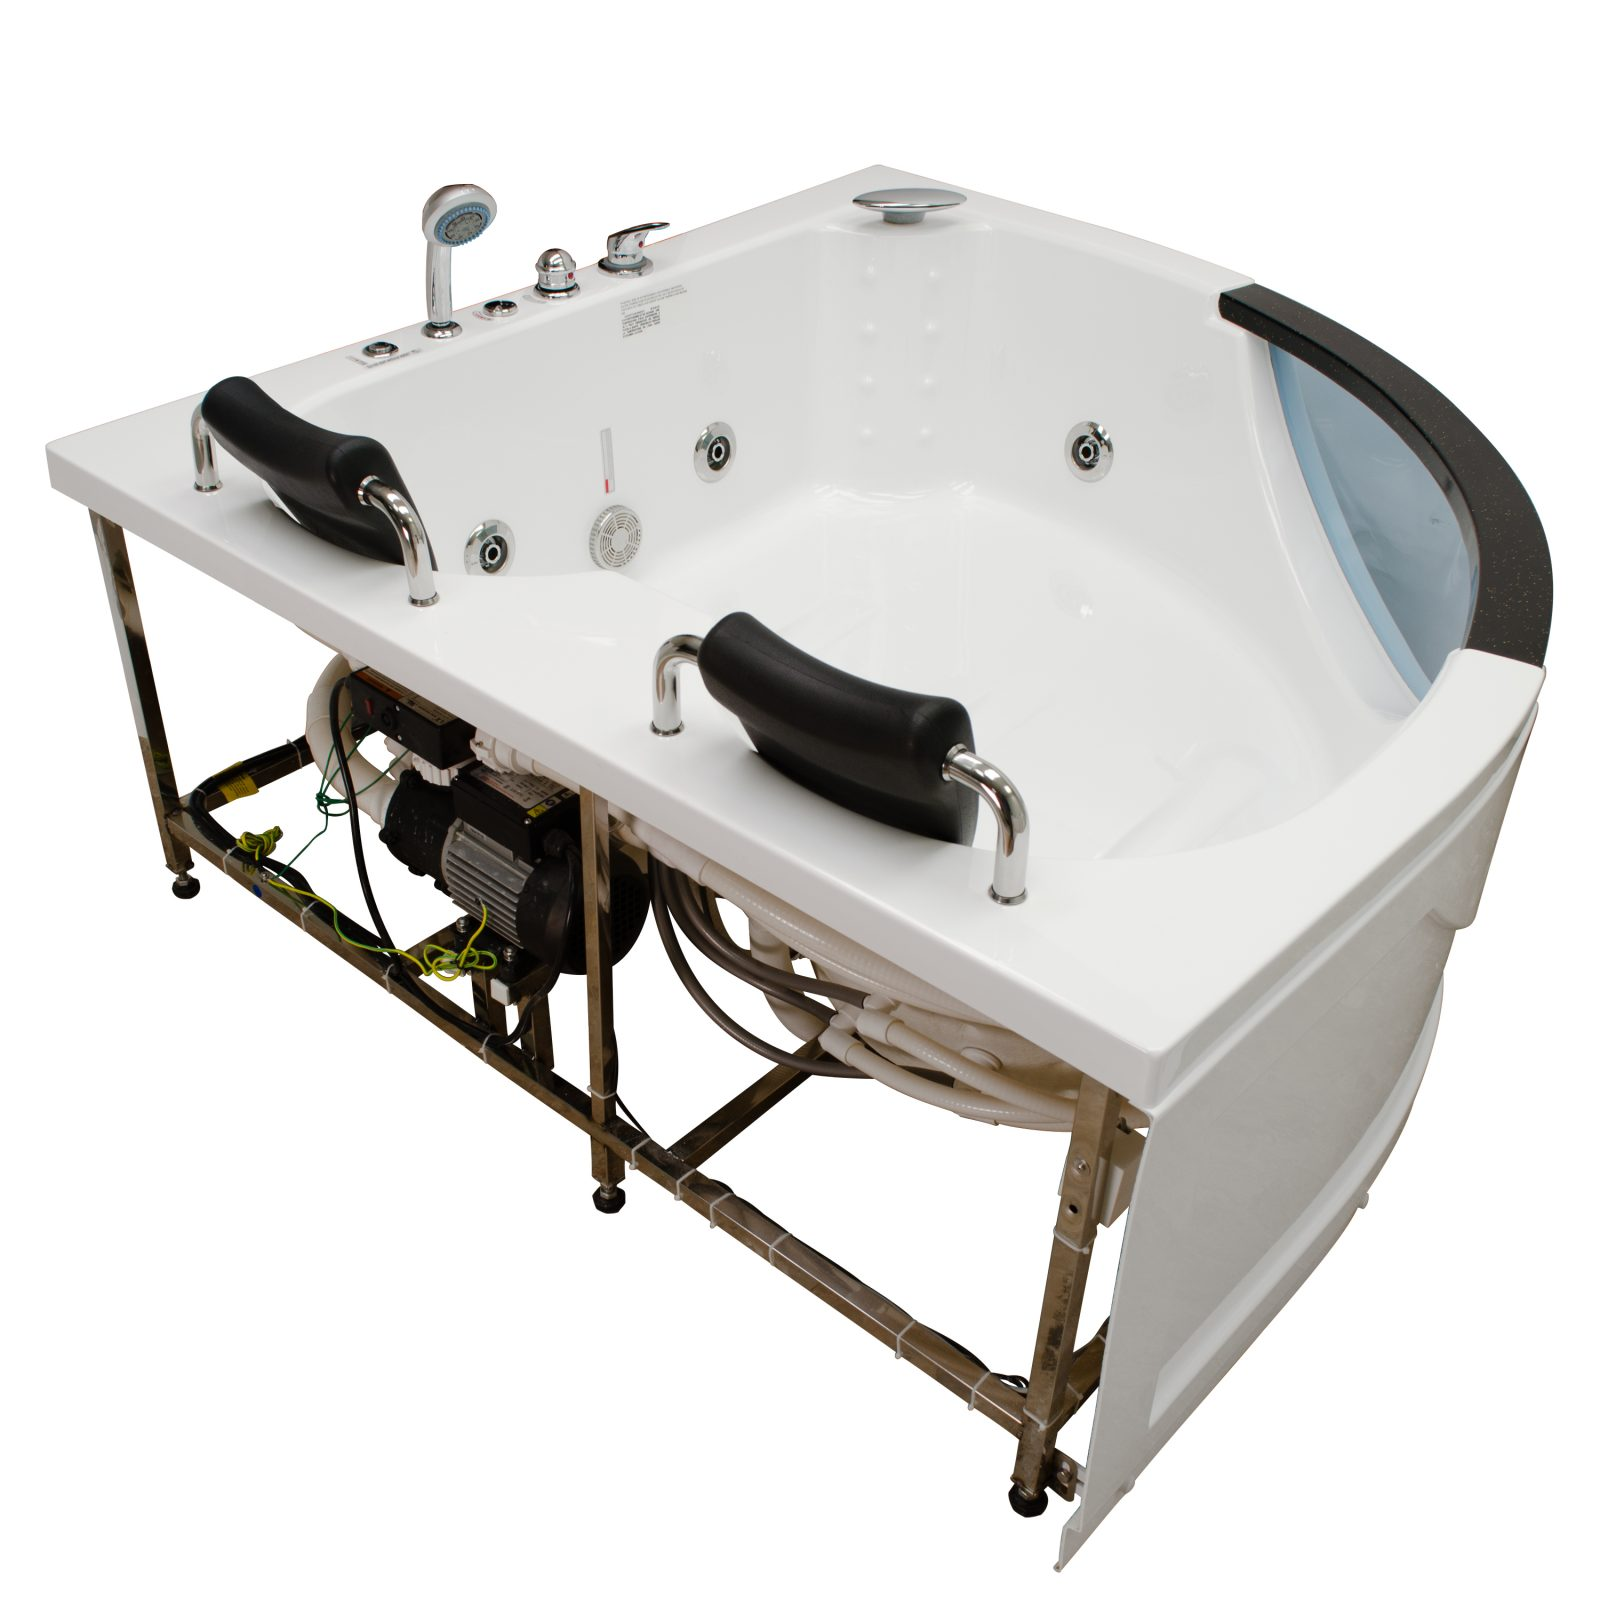 showers whirlpool tub for the units with steam images home steamrsr size ideas person shower sofa of exciting full